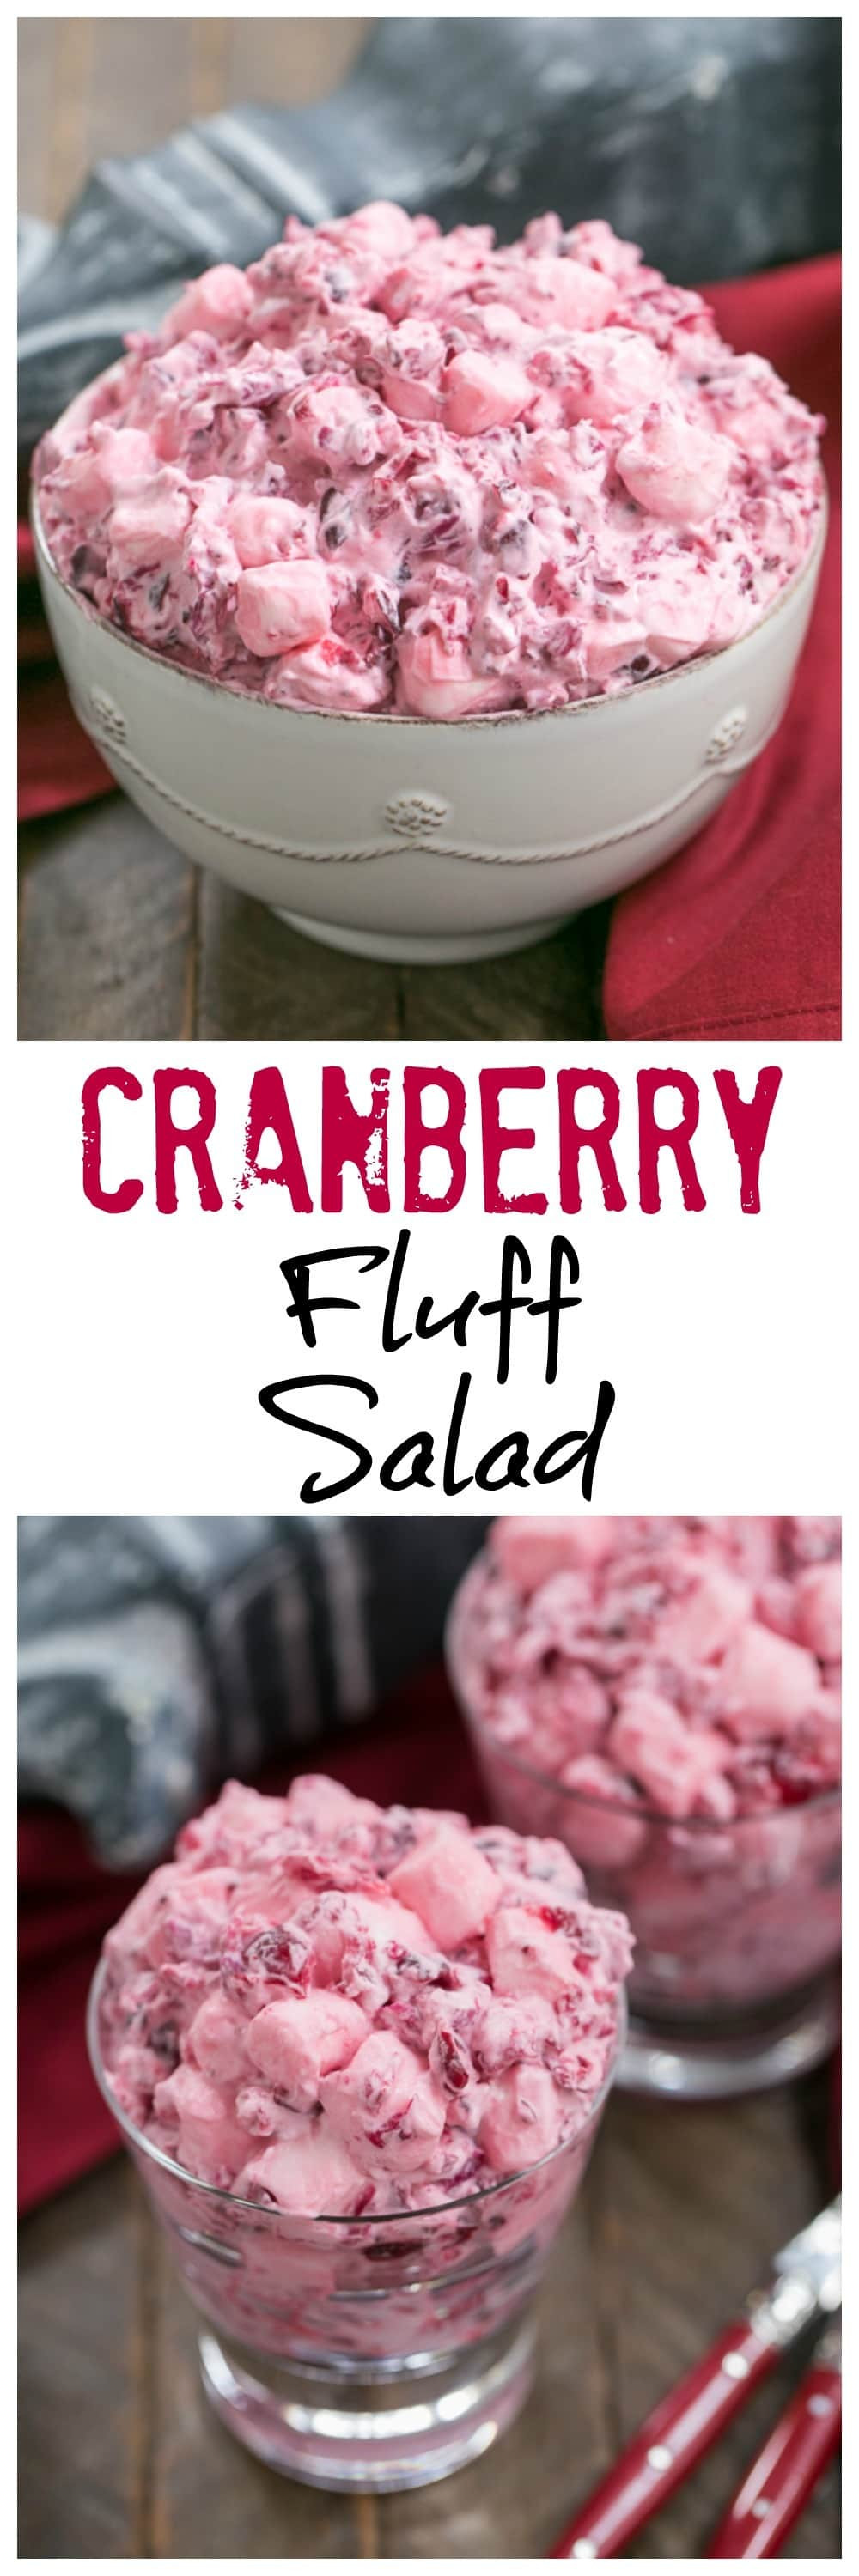 Cranberry Salad Recipes For Thanksgiving  Cranberry Fluff Salad SundaySupper That Skinny Chick